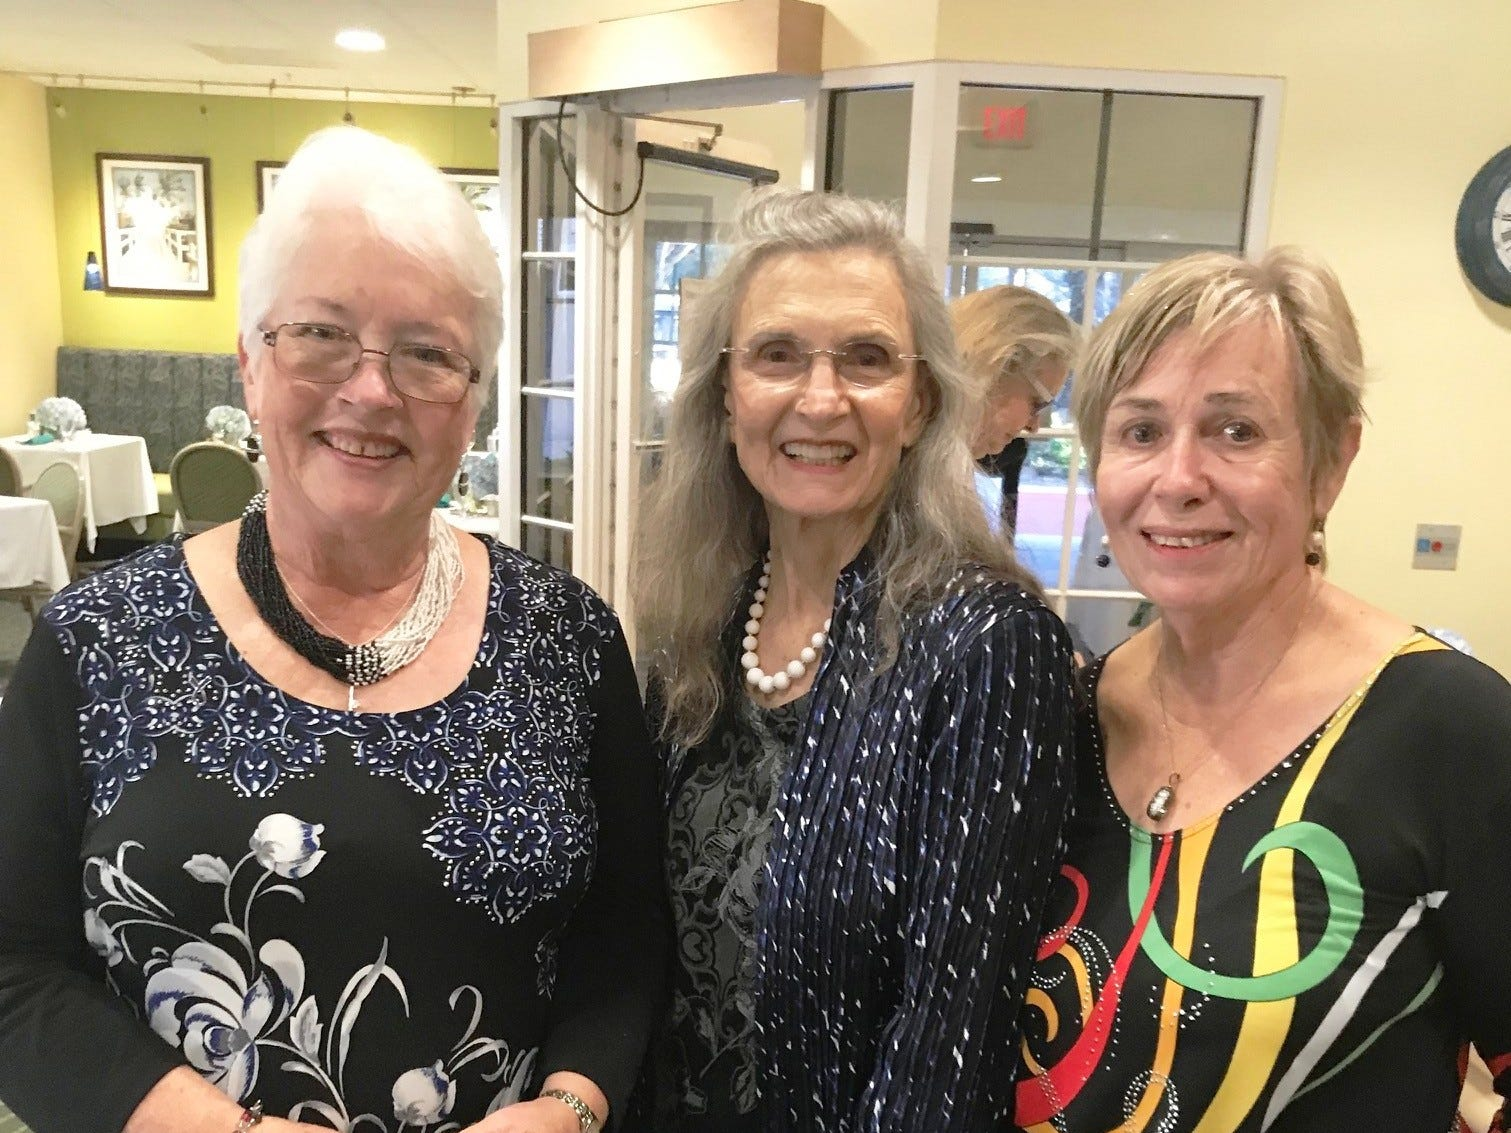 Carol Stone, left, Sunny Swearingen and Barbara Farley at the Kick-off Gala for Garden Club of Stuart's Secret Gardens Tour.